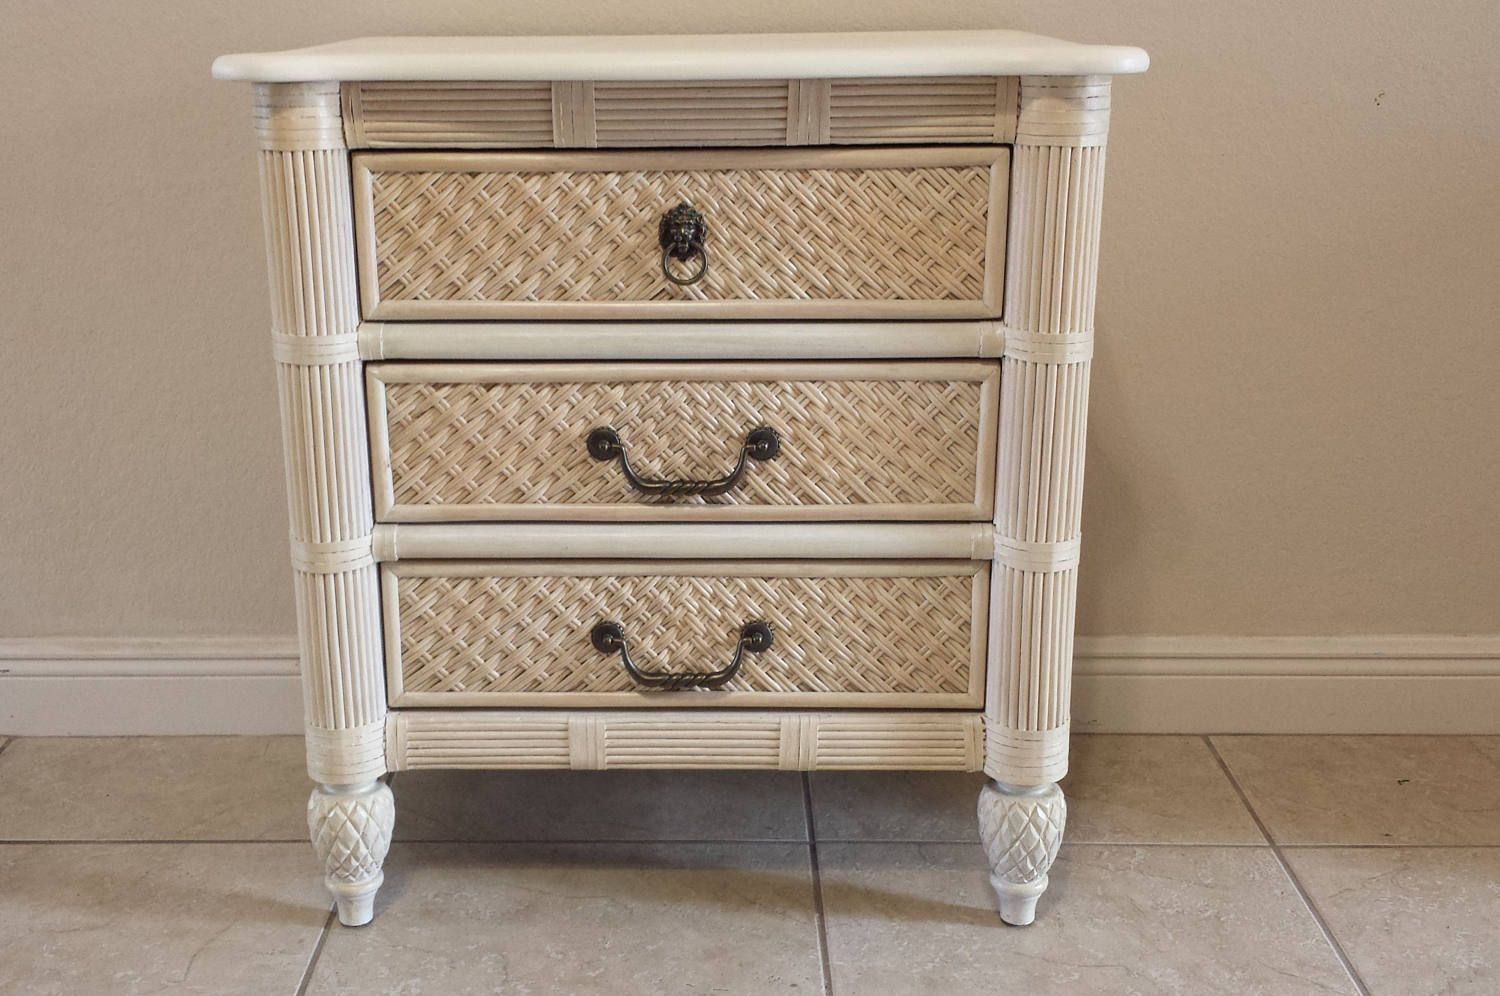 Lexington Wicker 3 Drawers Bachelor Chest Nightstand By Degfurnituredesigns On Etsy